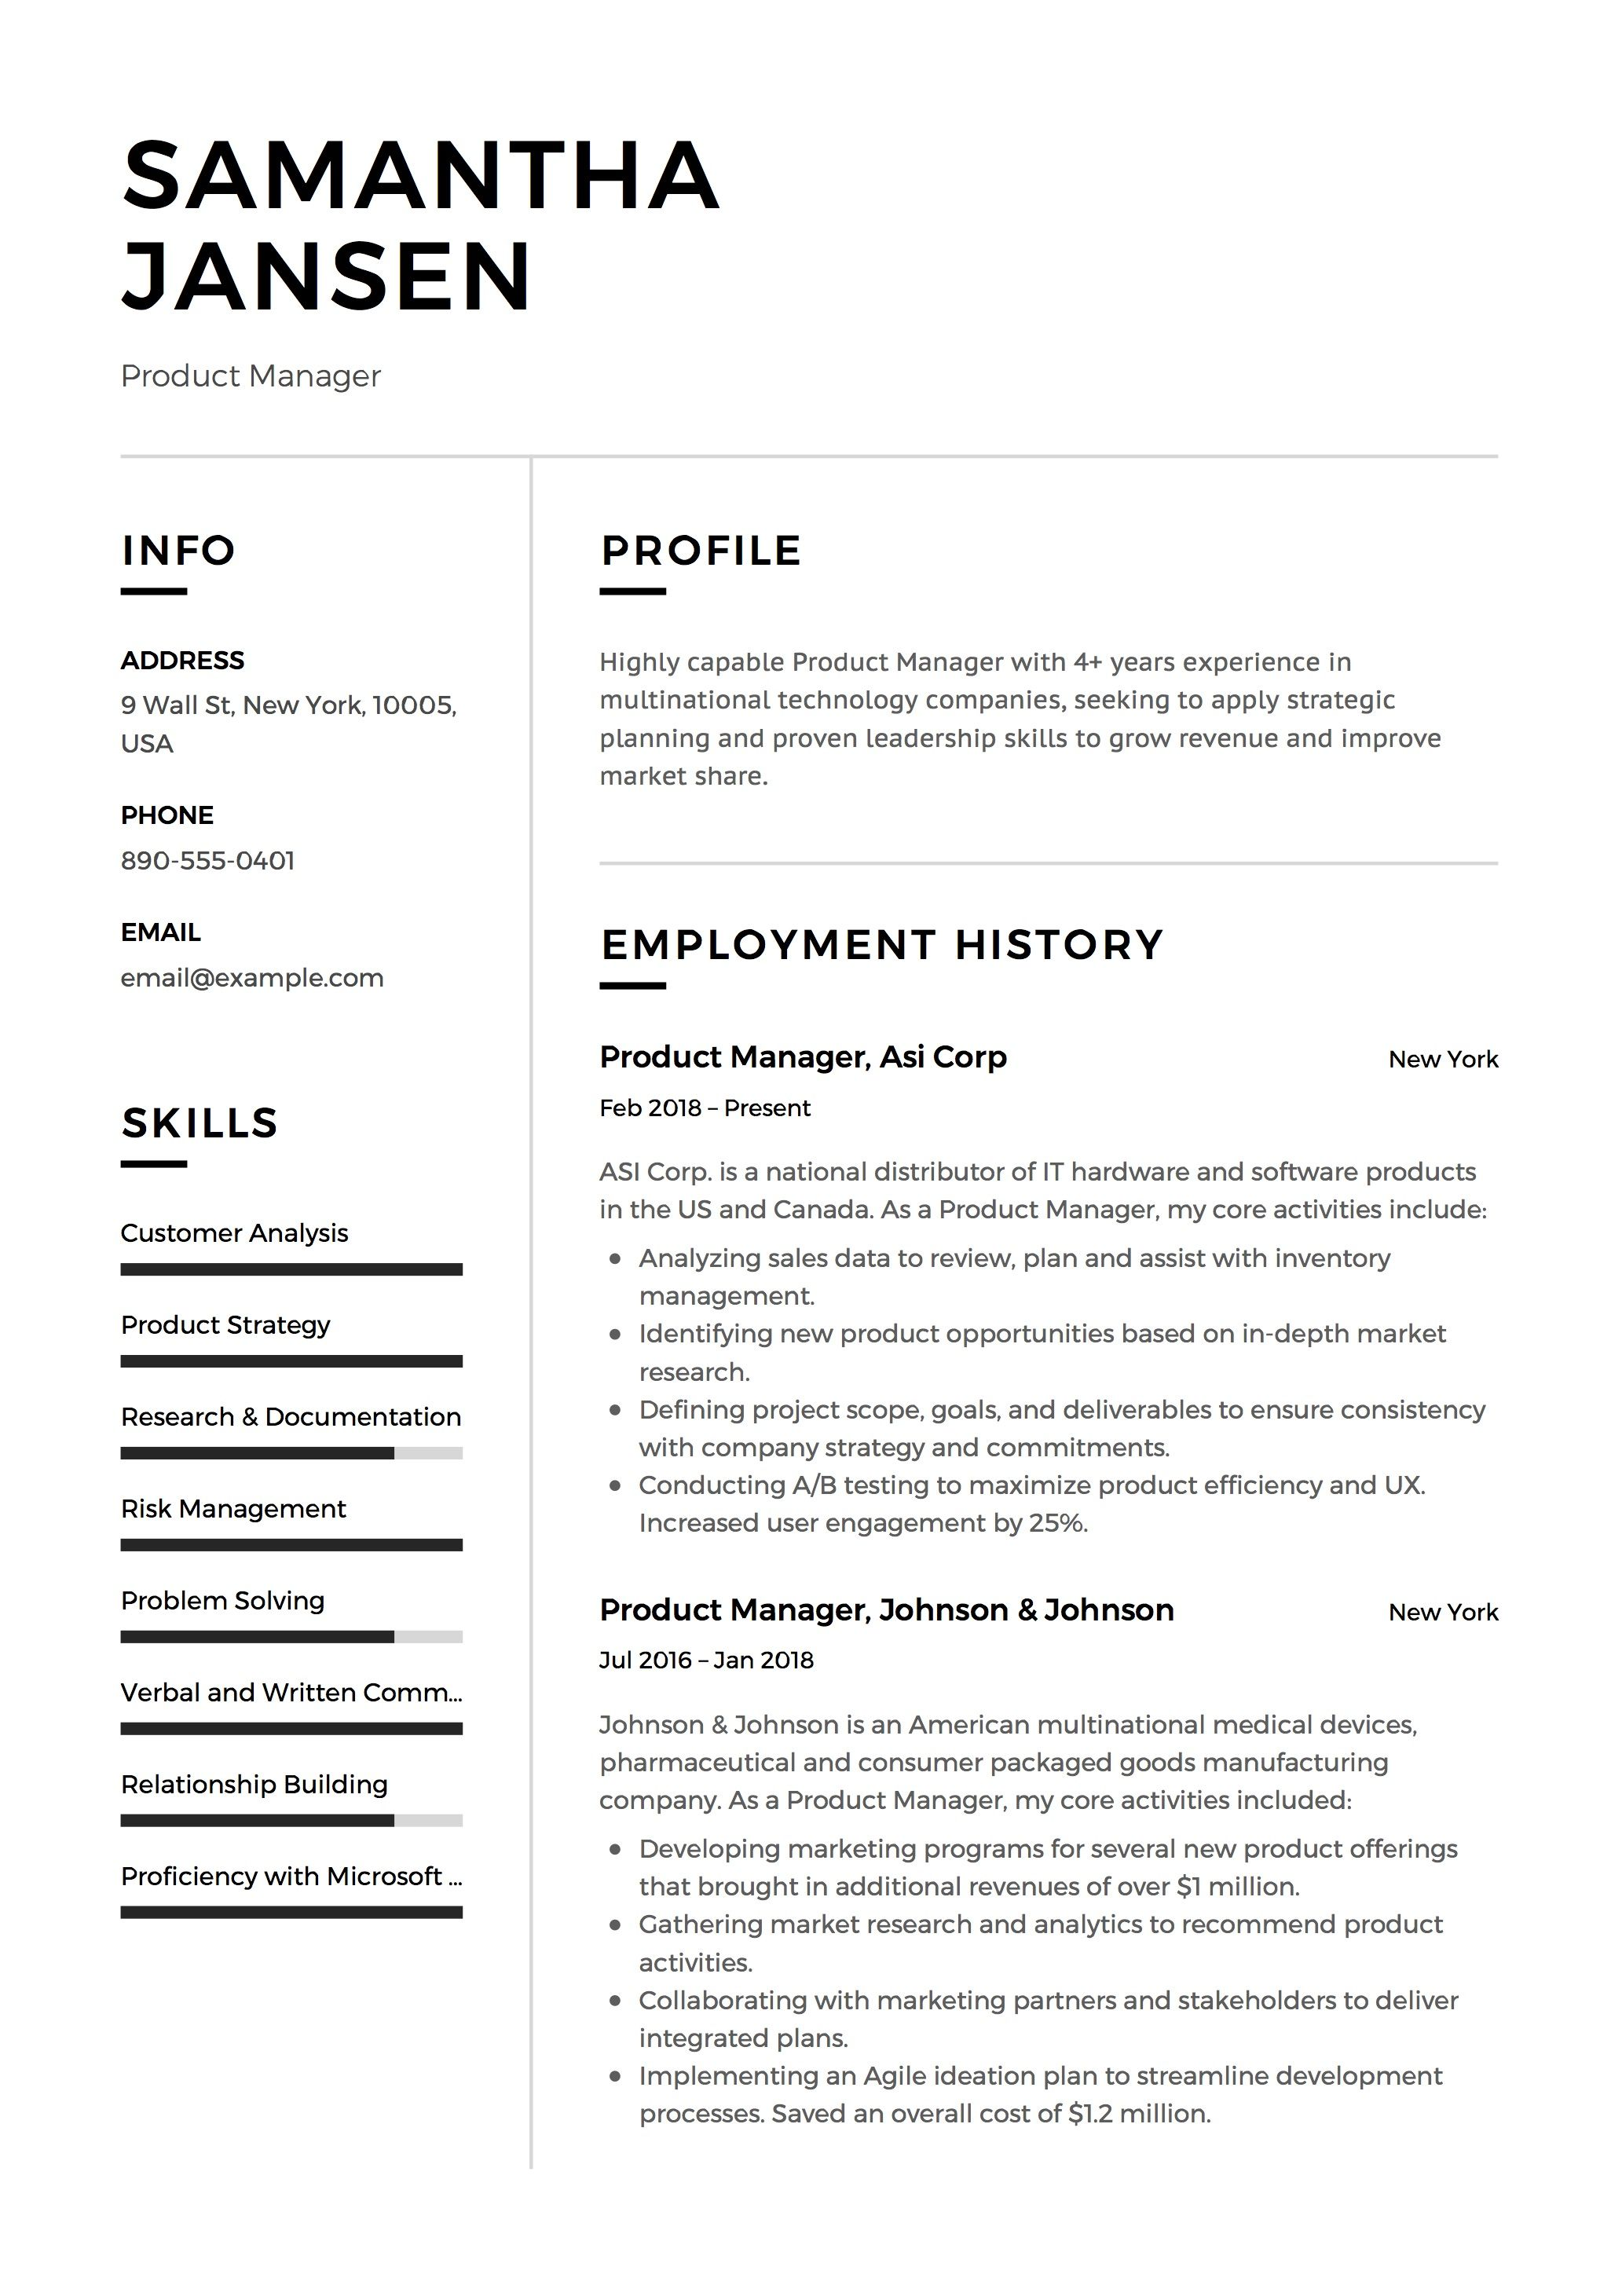 Product Manager Resume Guide Project Manager Resume Student